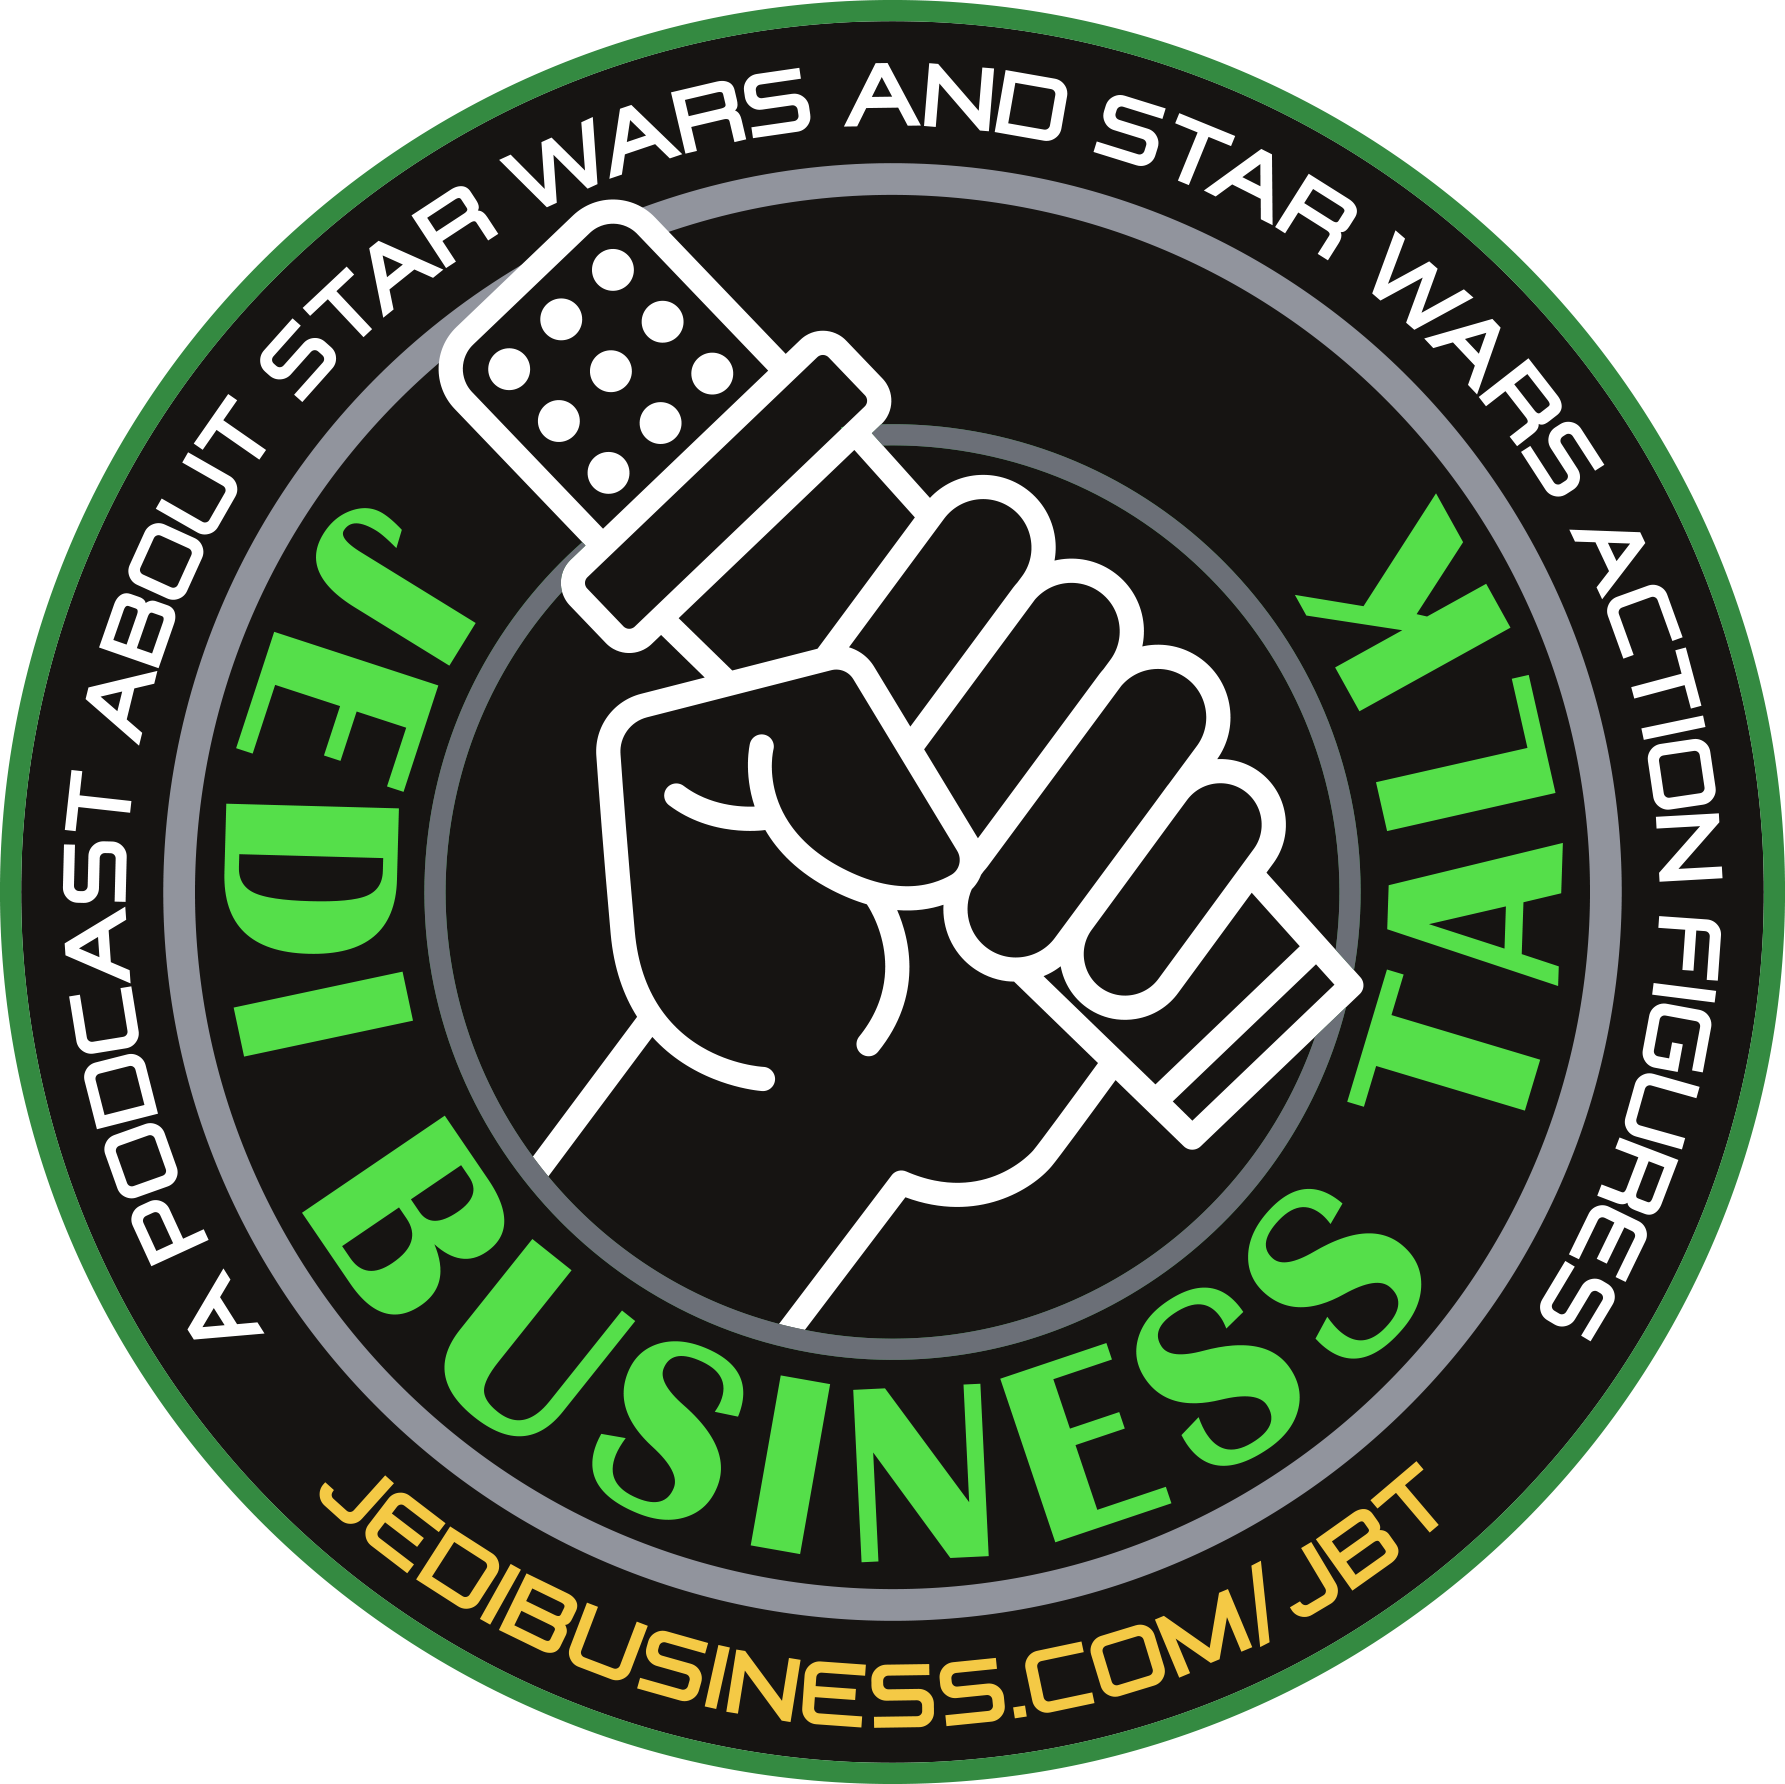 JBT - Jedi Business Talk